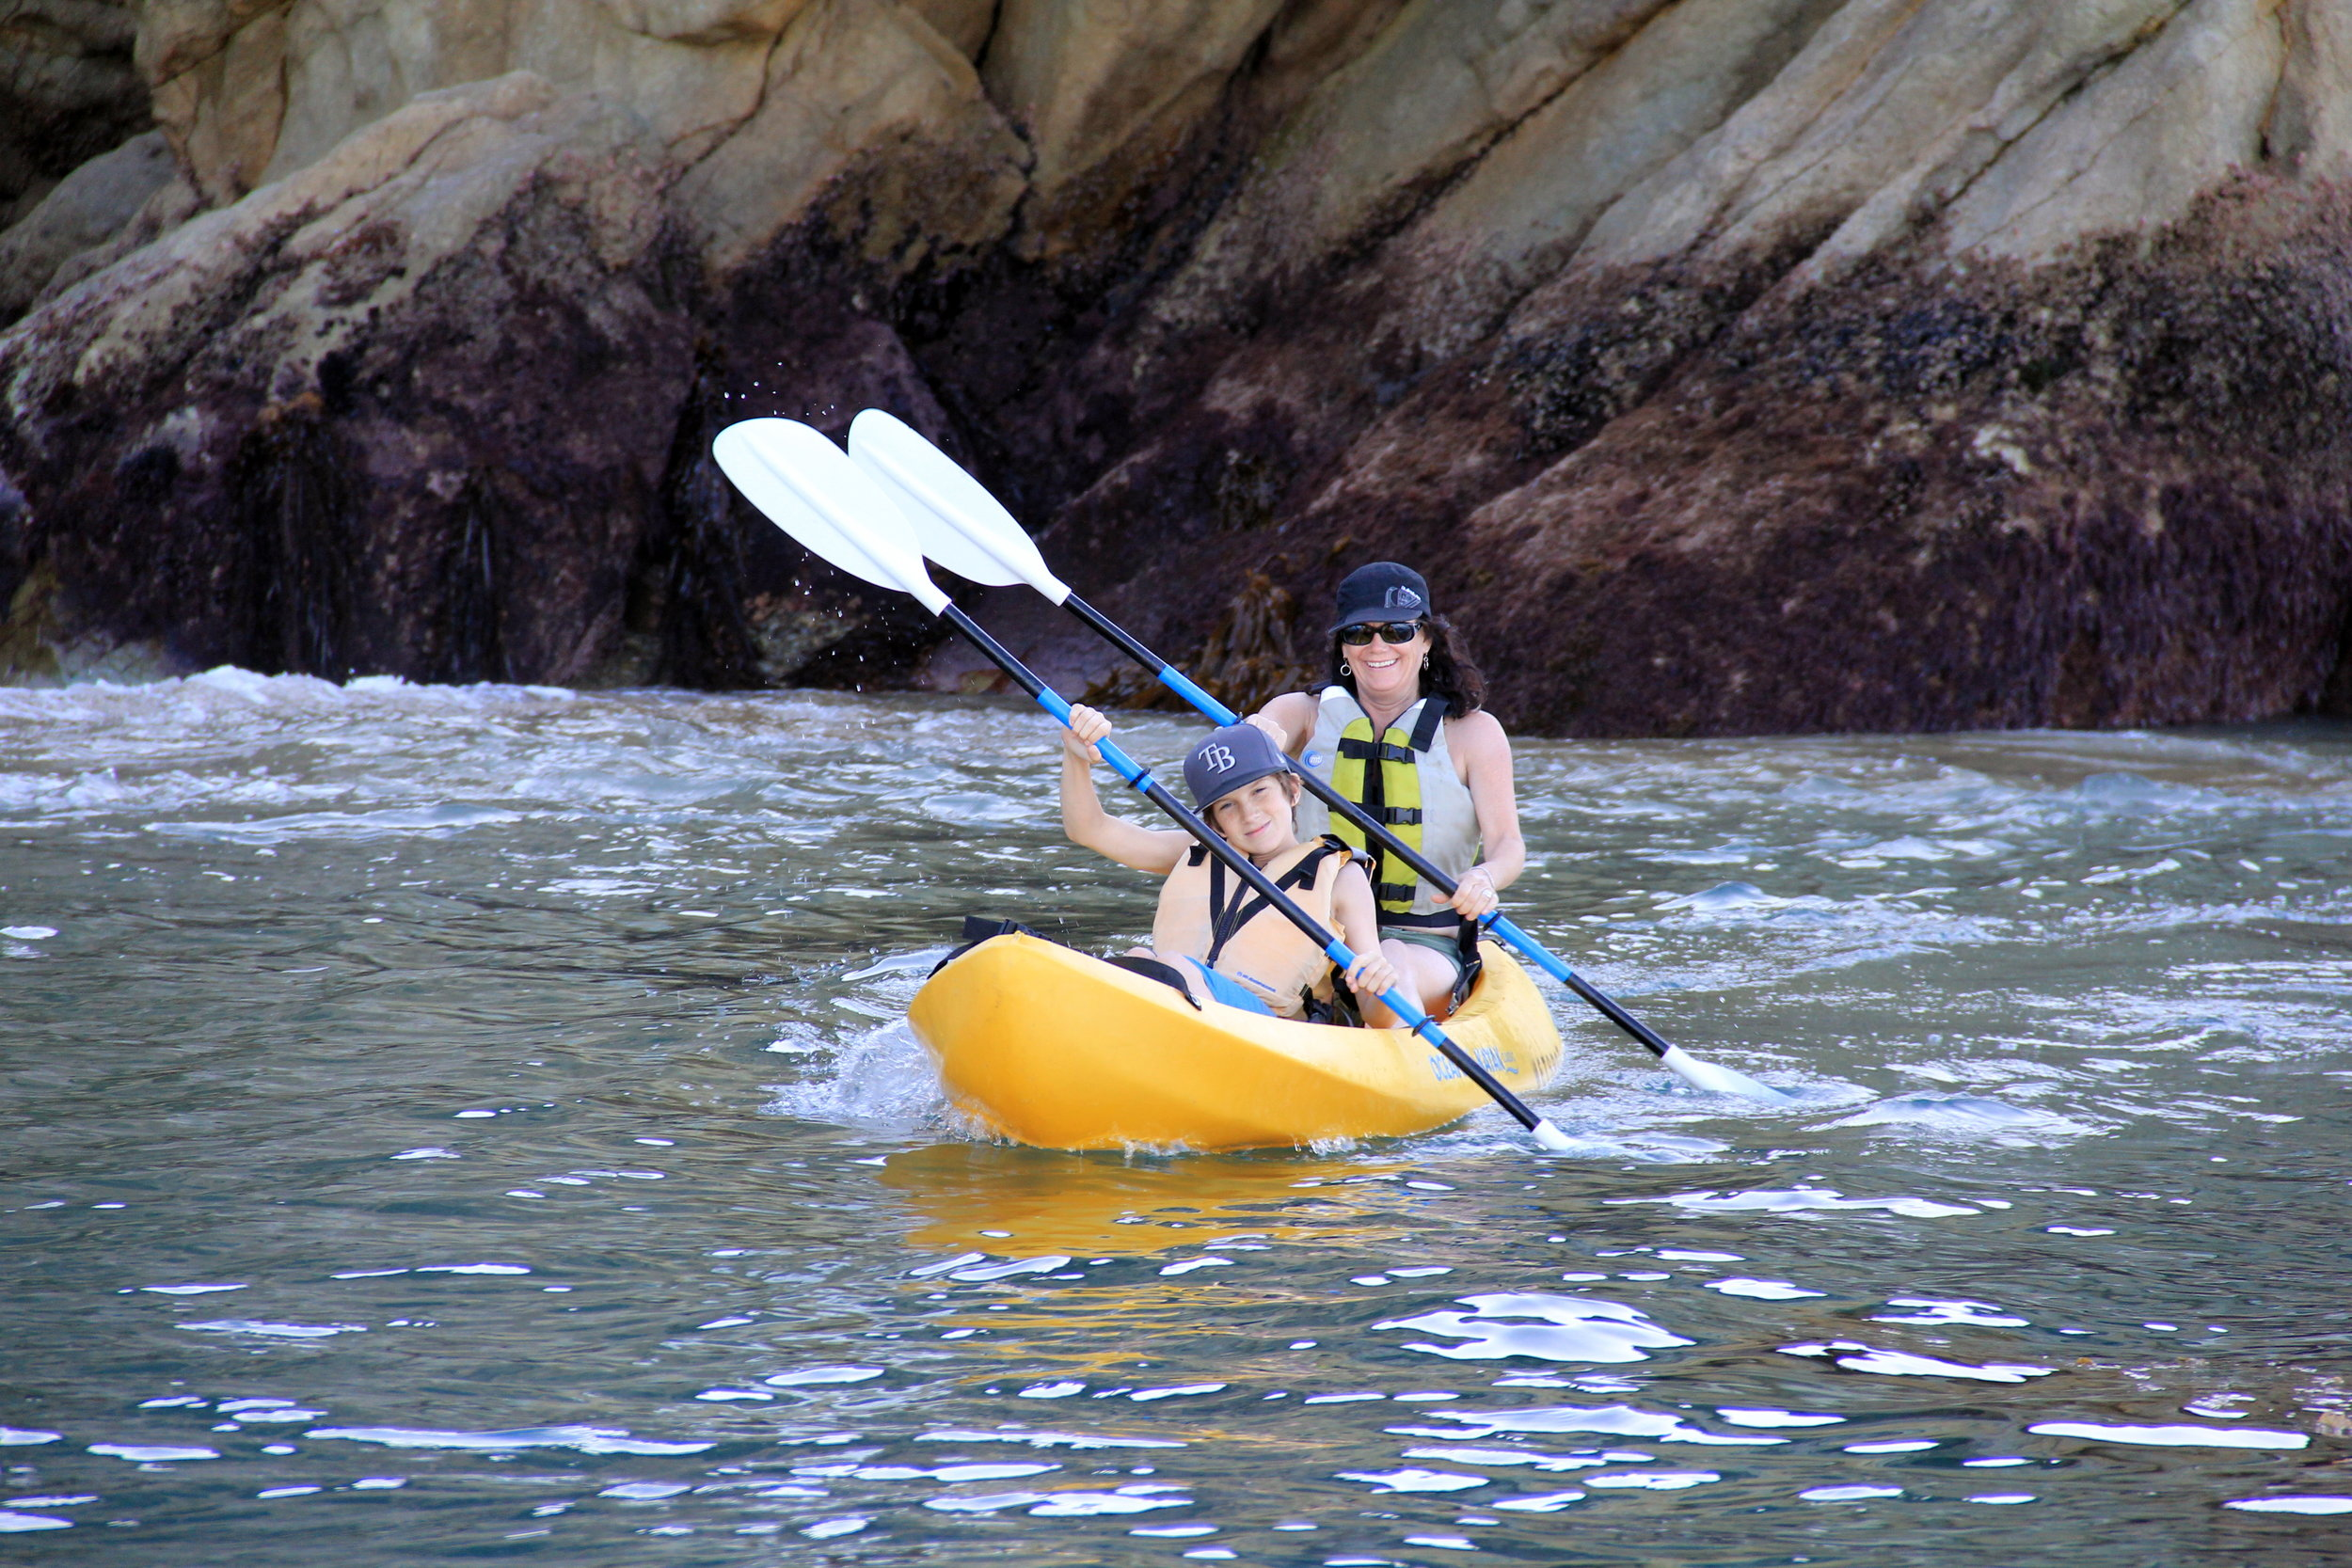 avalon kayak rentals - Paddle over kelp forests and colorful Garibaldi, easy and fun for the whole family. Sit on top OCEAN KAYAKS are user friendly and require no prior experience. Rental includes instruction, life vest, backrest and paddle.